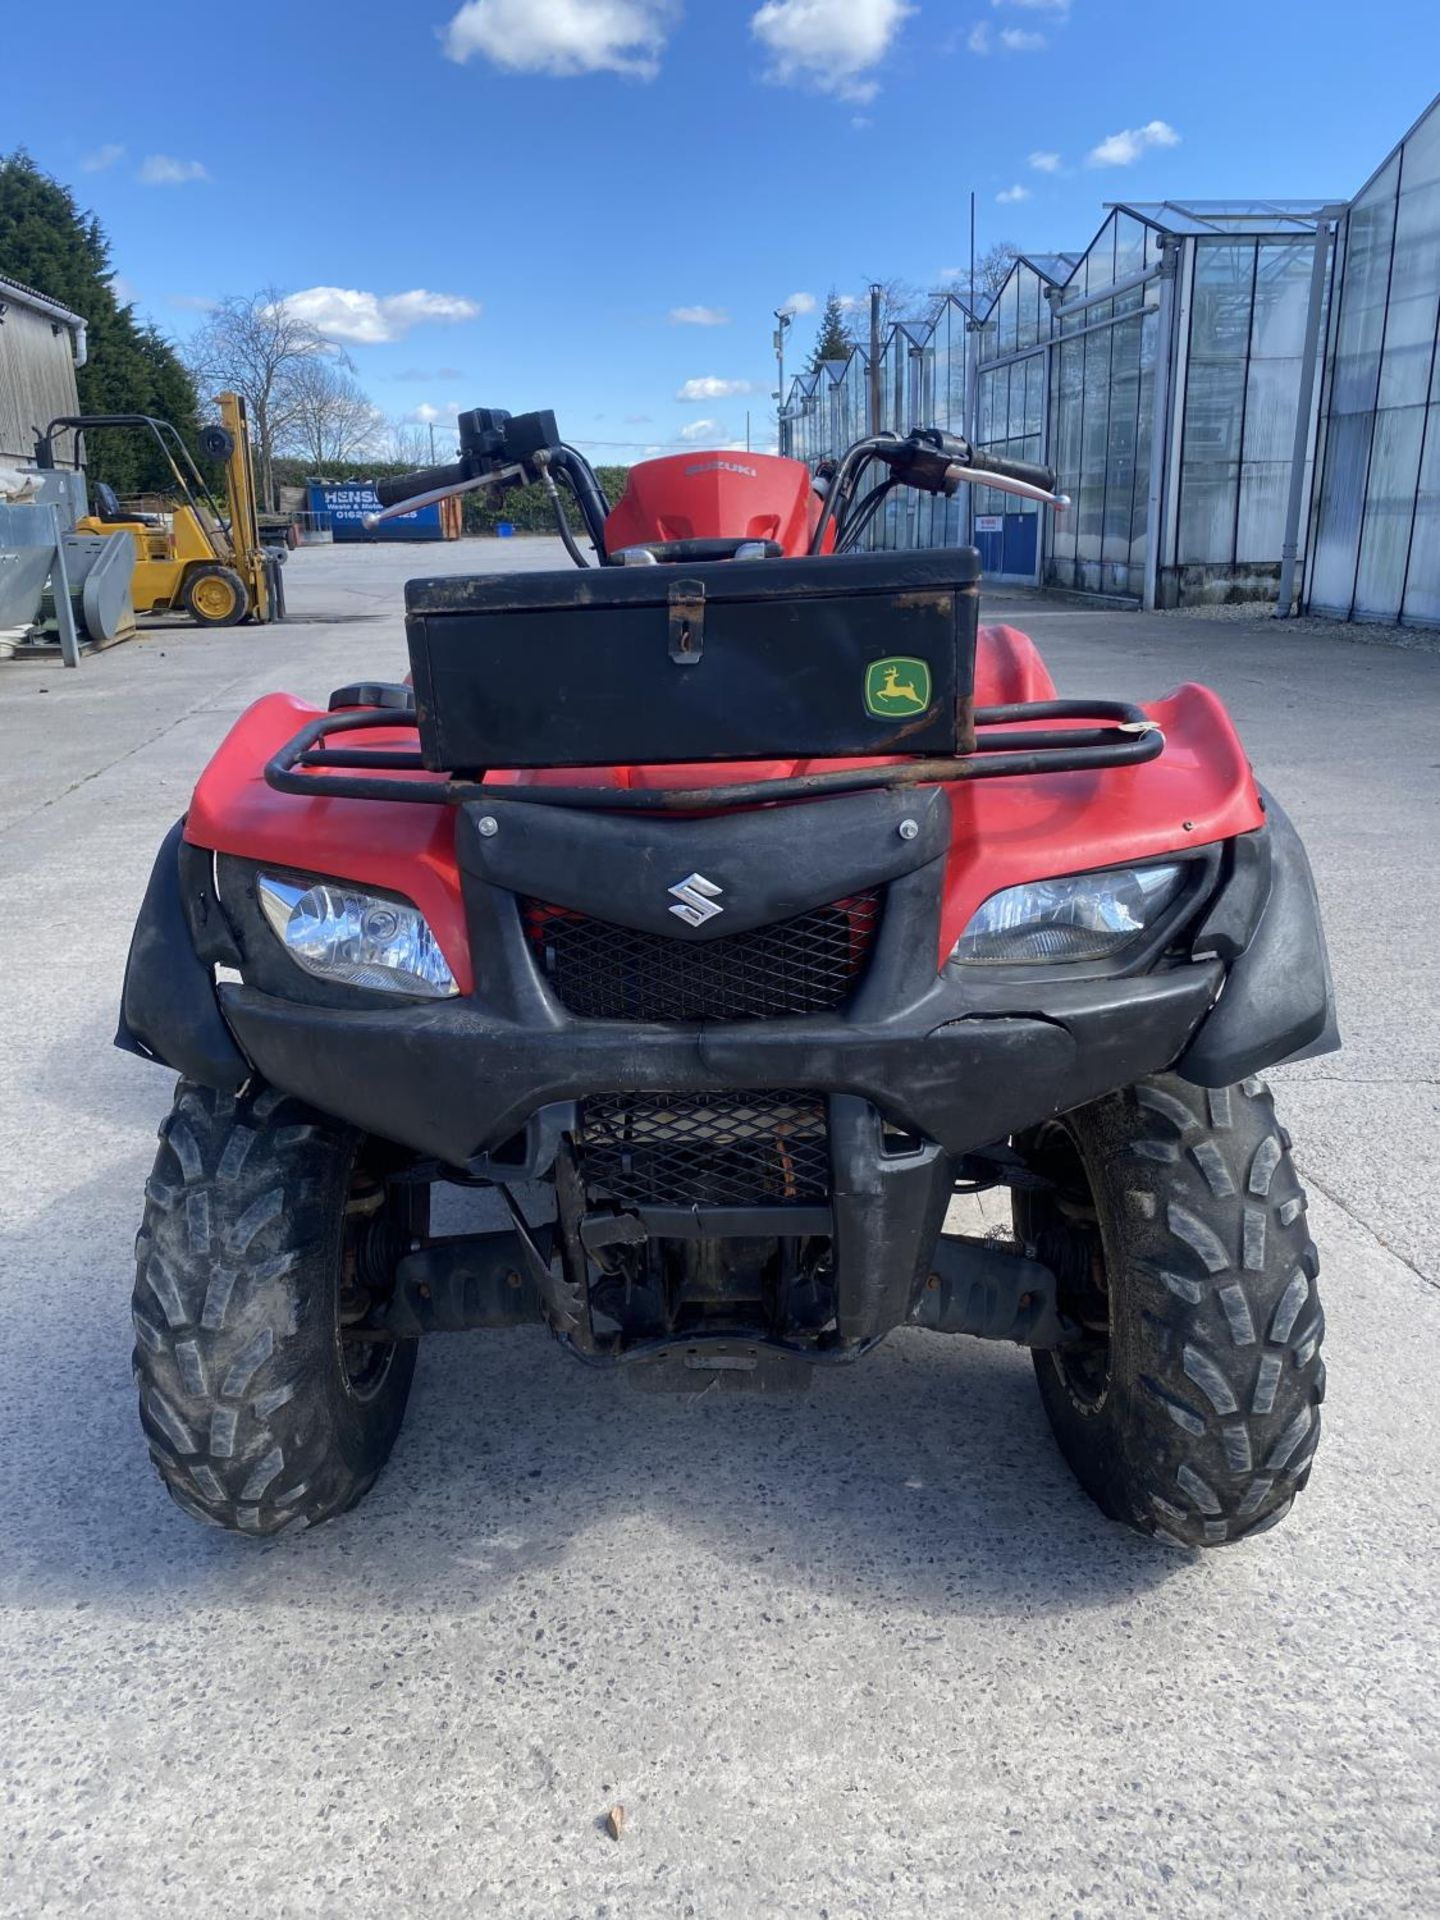 A 2014 SUZUKI KING QUAD, 500 CC WITH POWER STEERING - SEE VIDEO OF VEHICLE STARTING AND RUNNING AT - Image 3 of 9